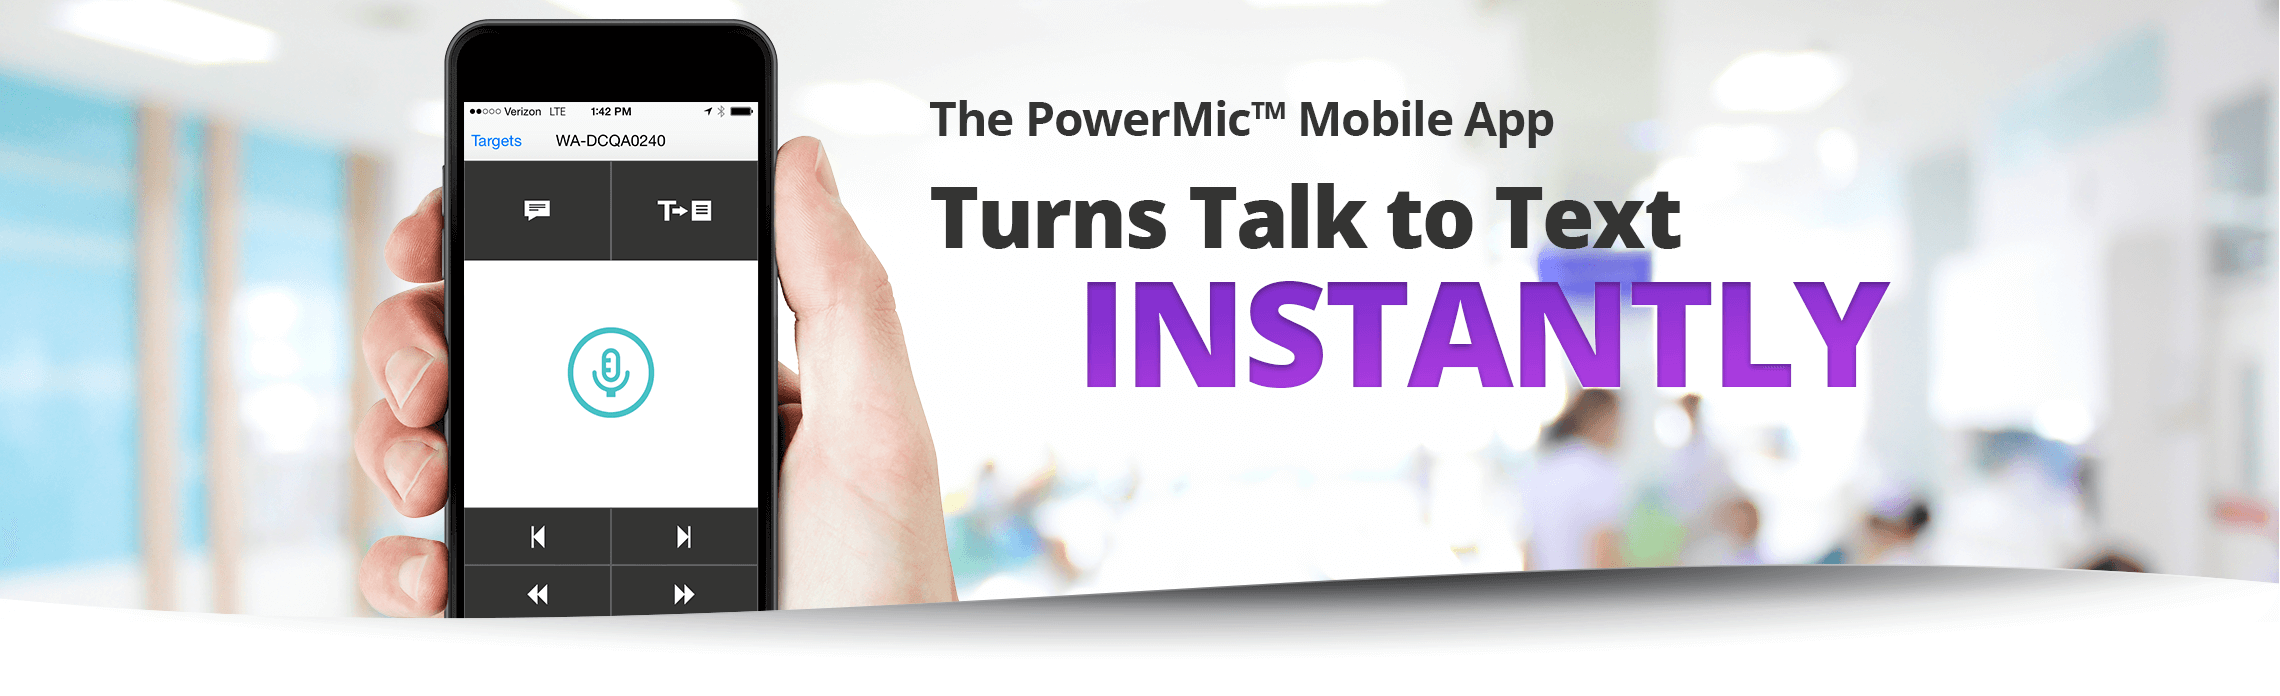 The PowerMic Mobile App - Turns talk to text instantly